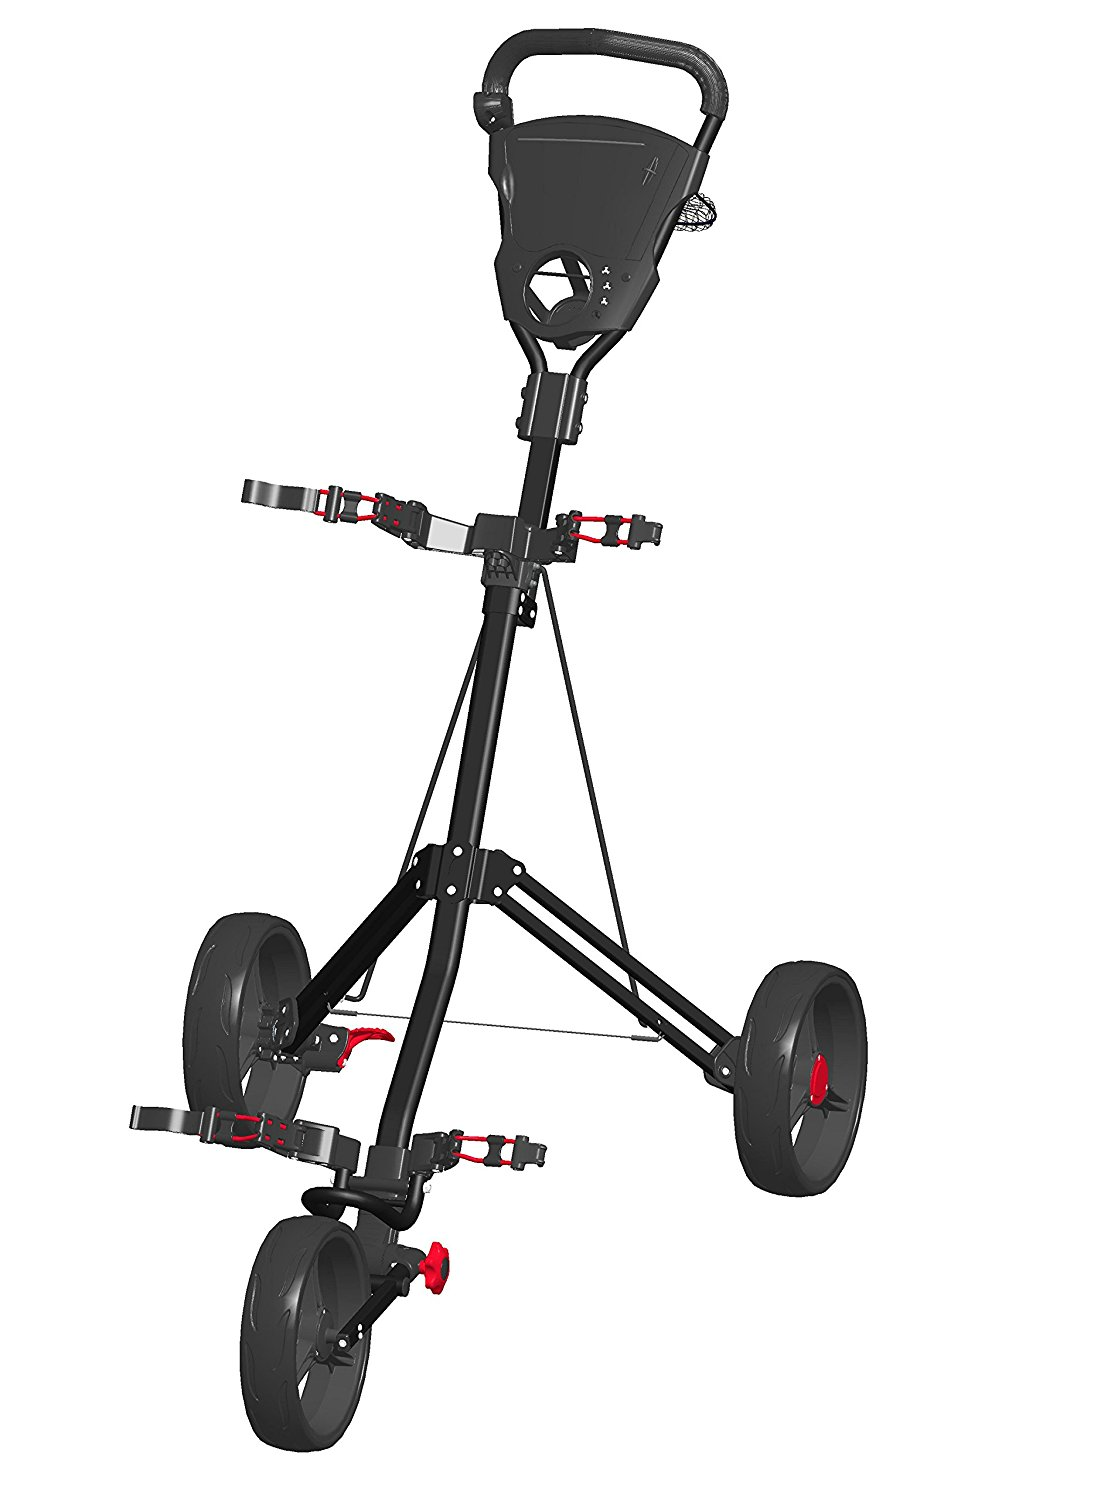 Spin It Easy Roll Golf Push Carts